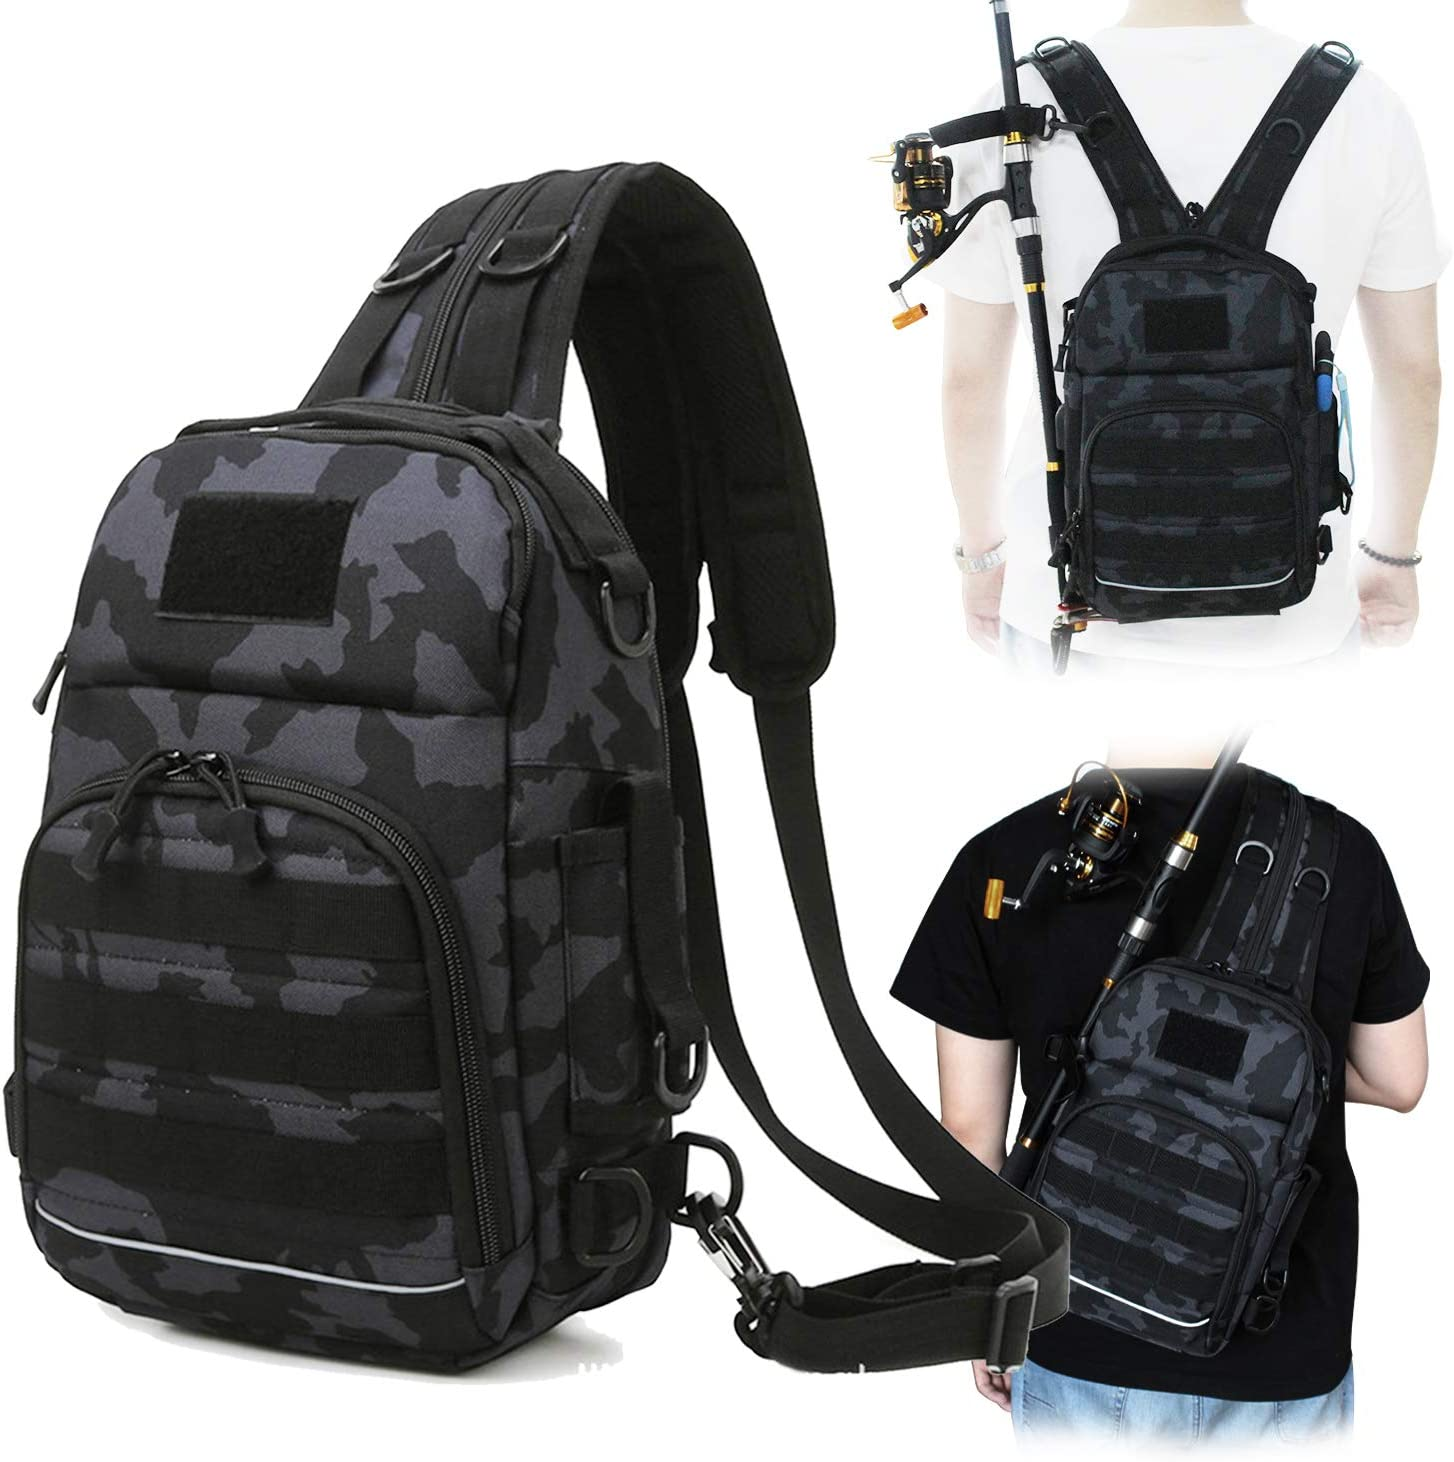 Thekuai Fishing Tackle Backpack Storage Outdoor - Louisville-Jefferson County Mall excellence